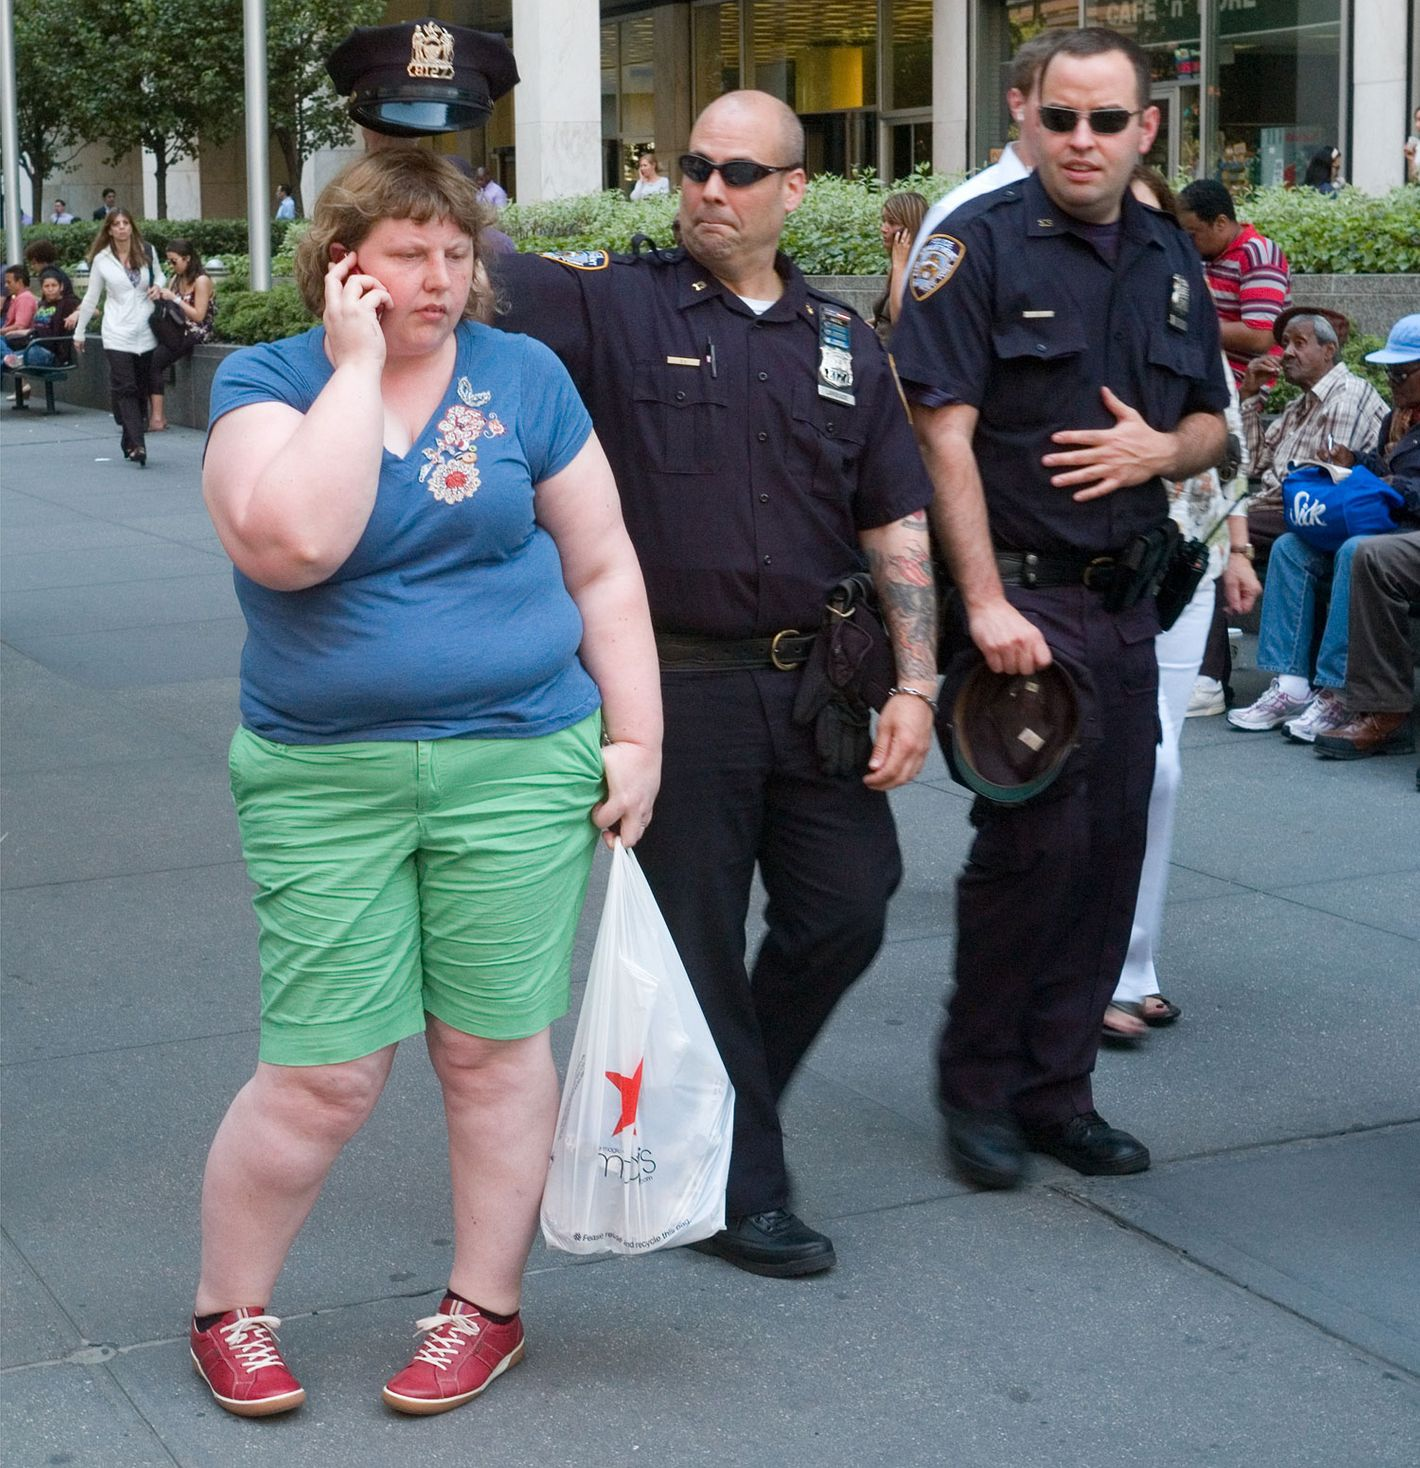 The Photographer Who Captures Fat Shaming On Camera